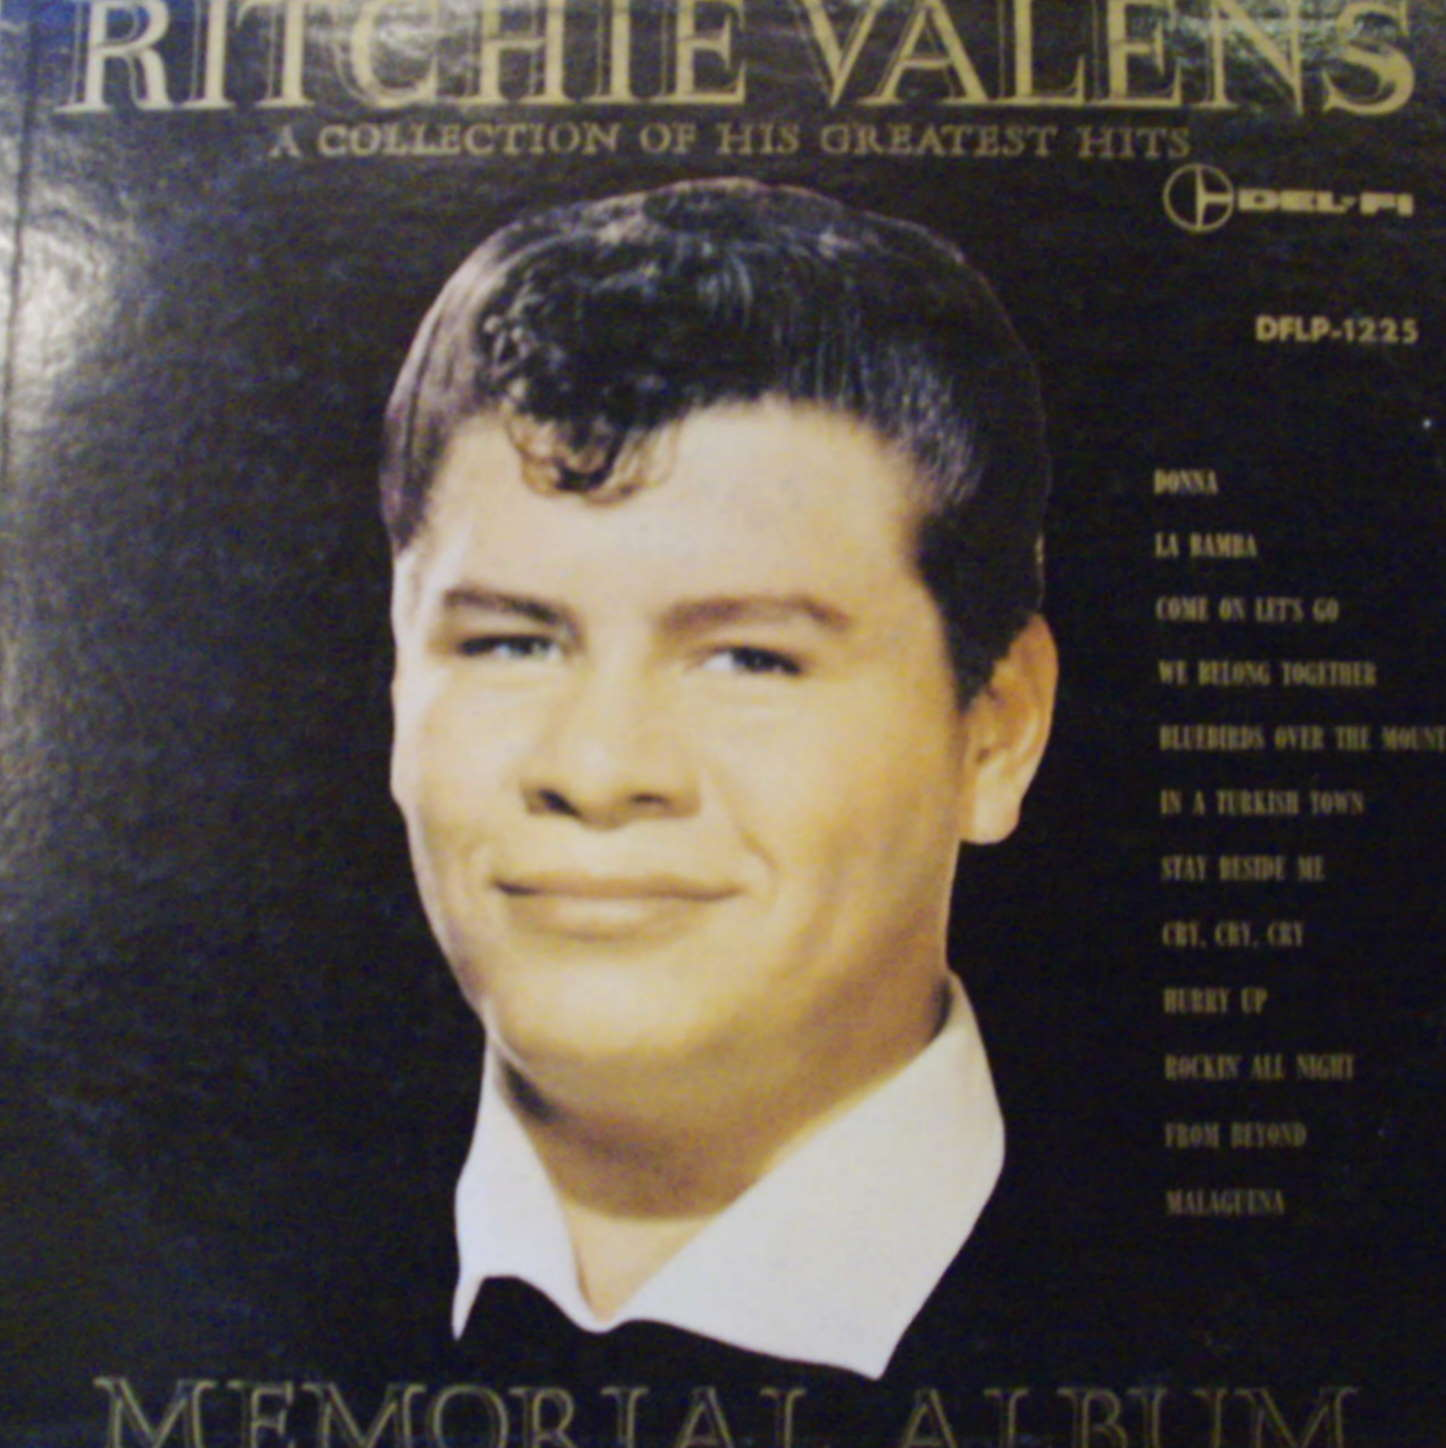 Ritchie Valens / His Greatest Hits